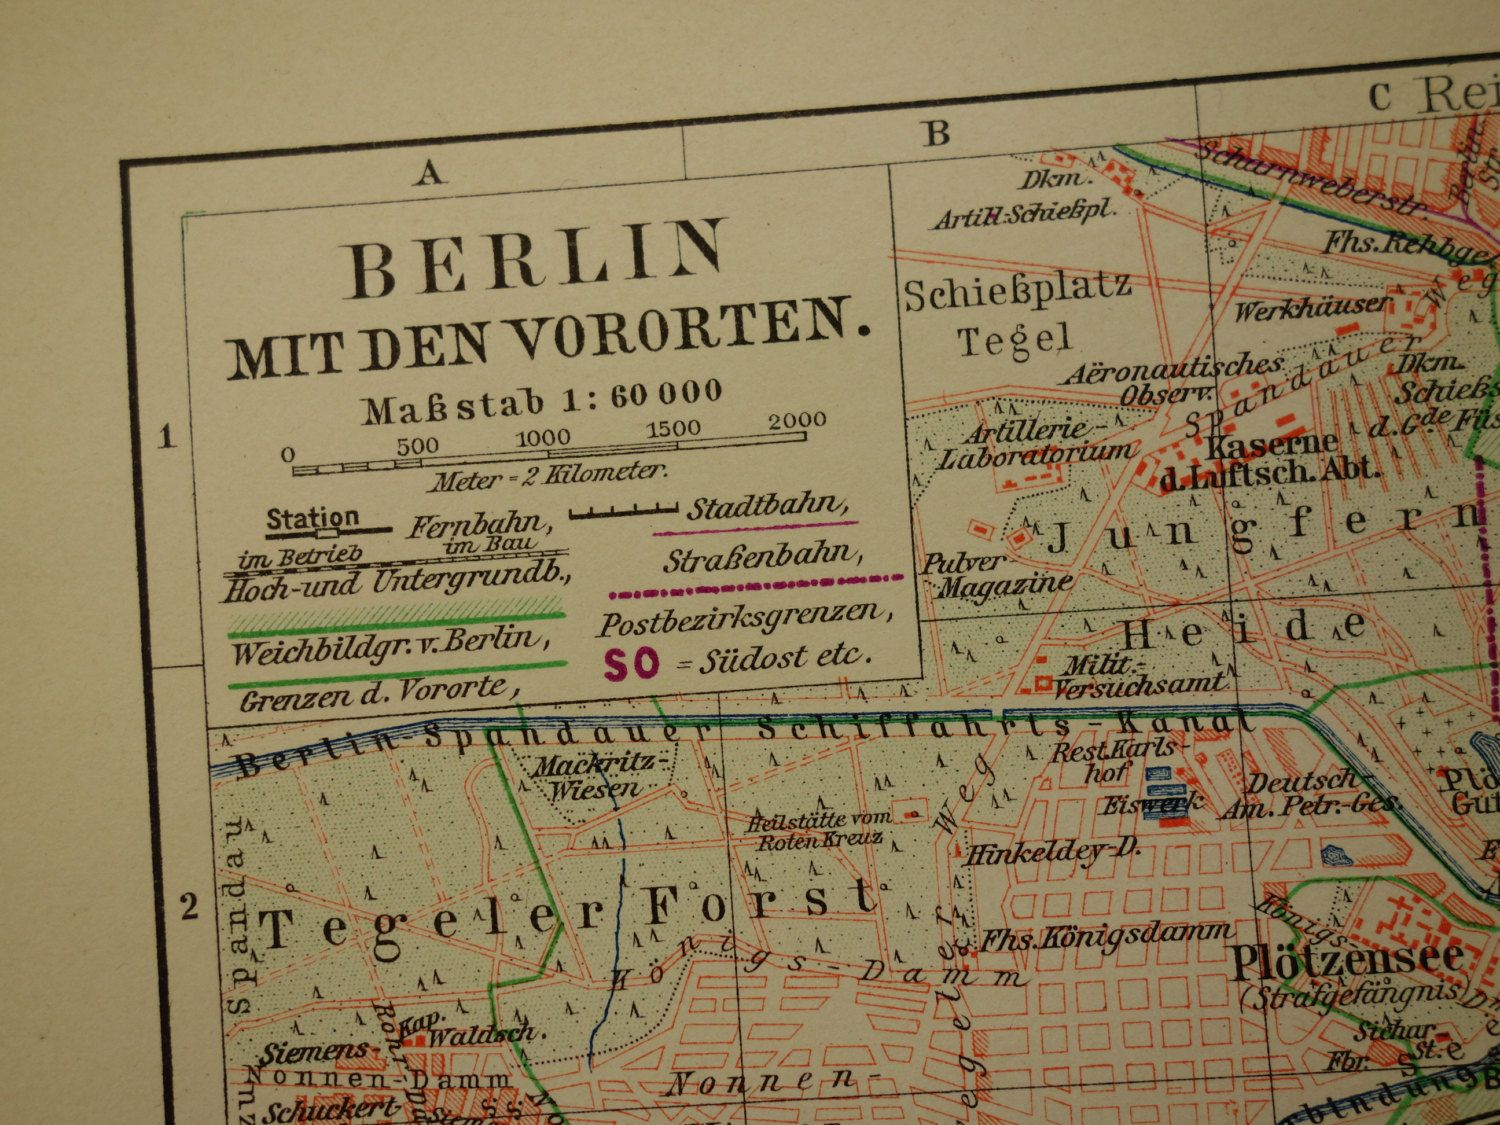 Old map of Berlin and surroundings 1906